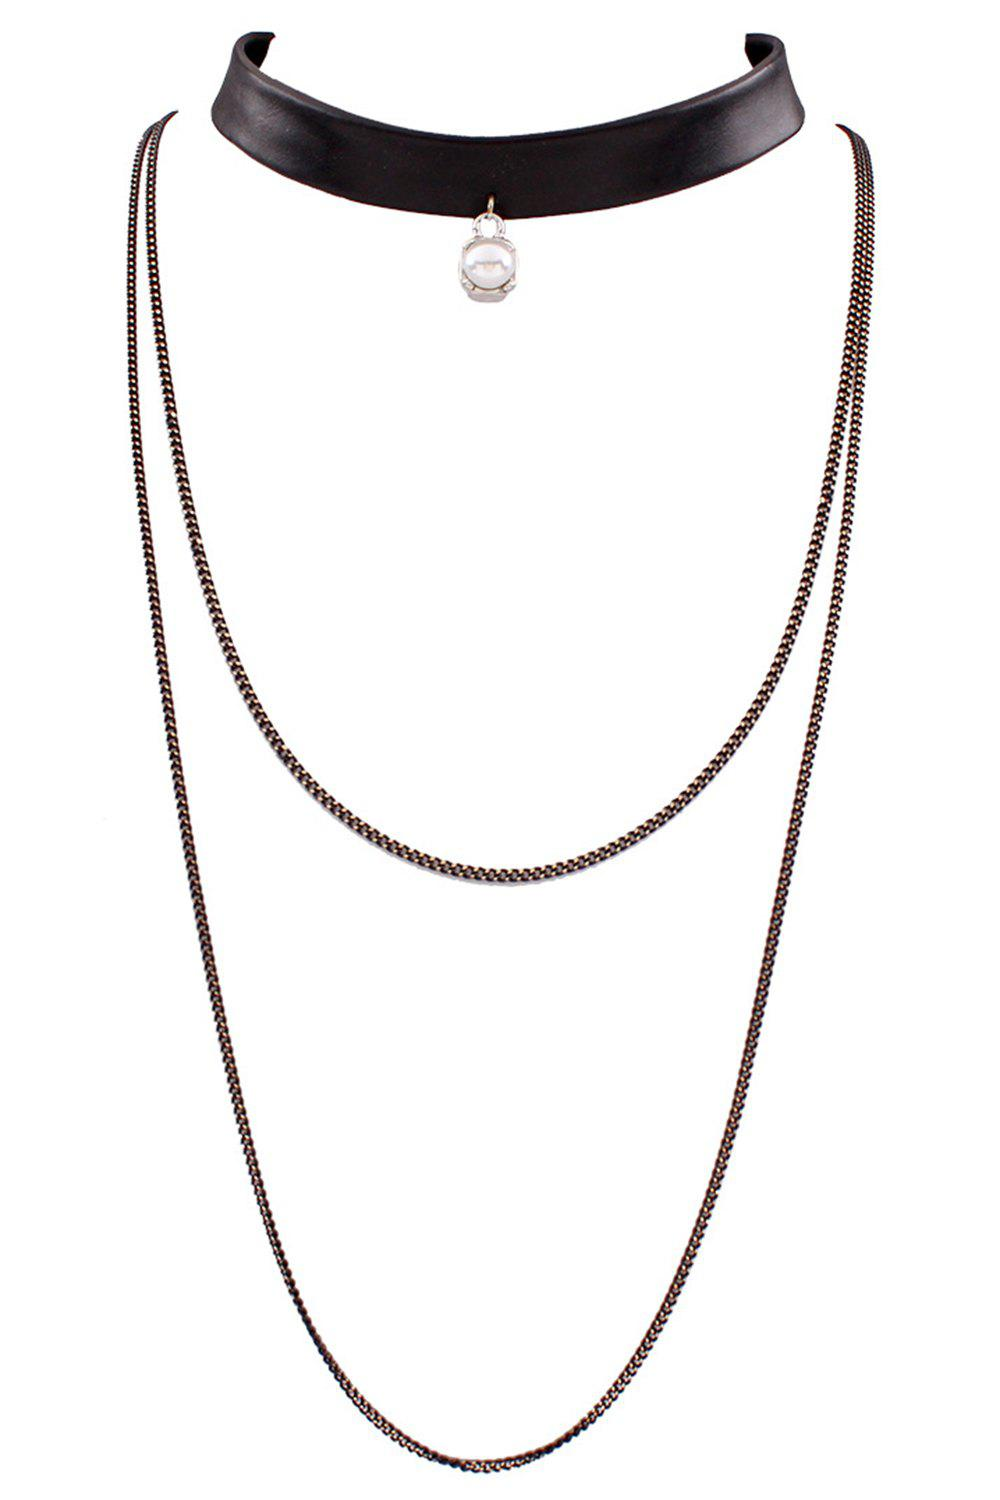 Multilayered Chain PU Leather Necklace - BLACK